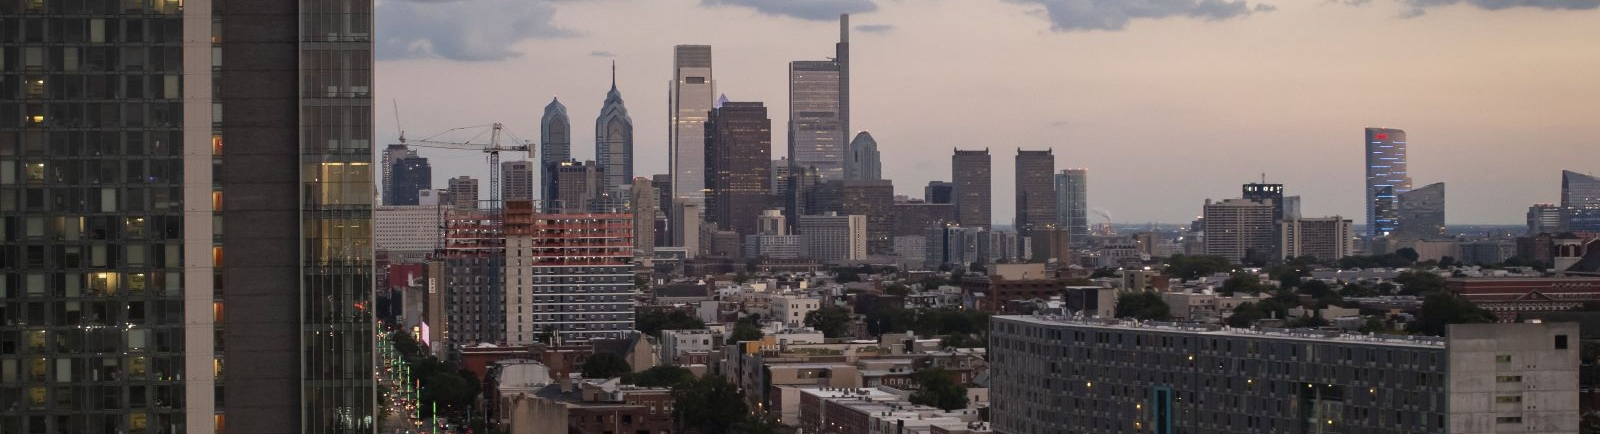 The Philadelphia skyline as seen from North Broad Street